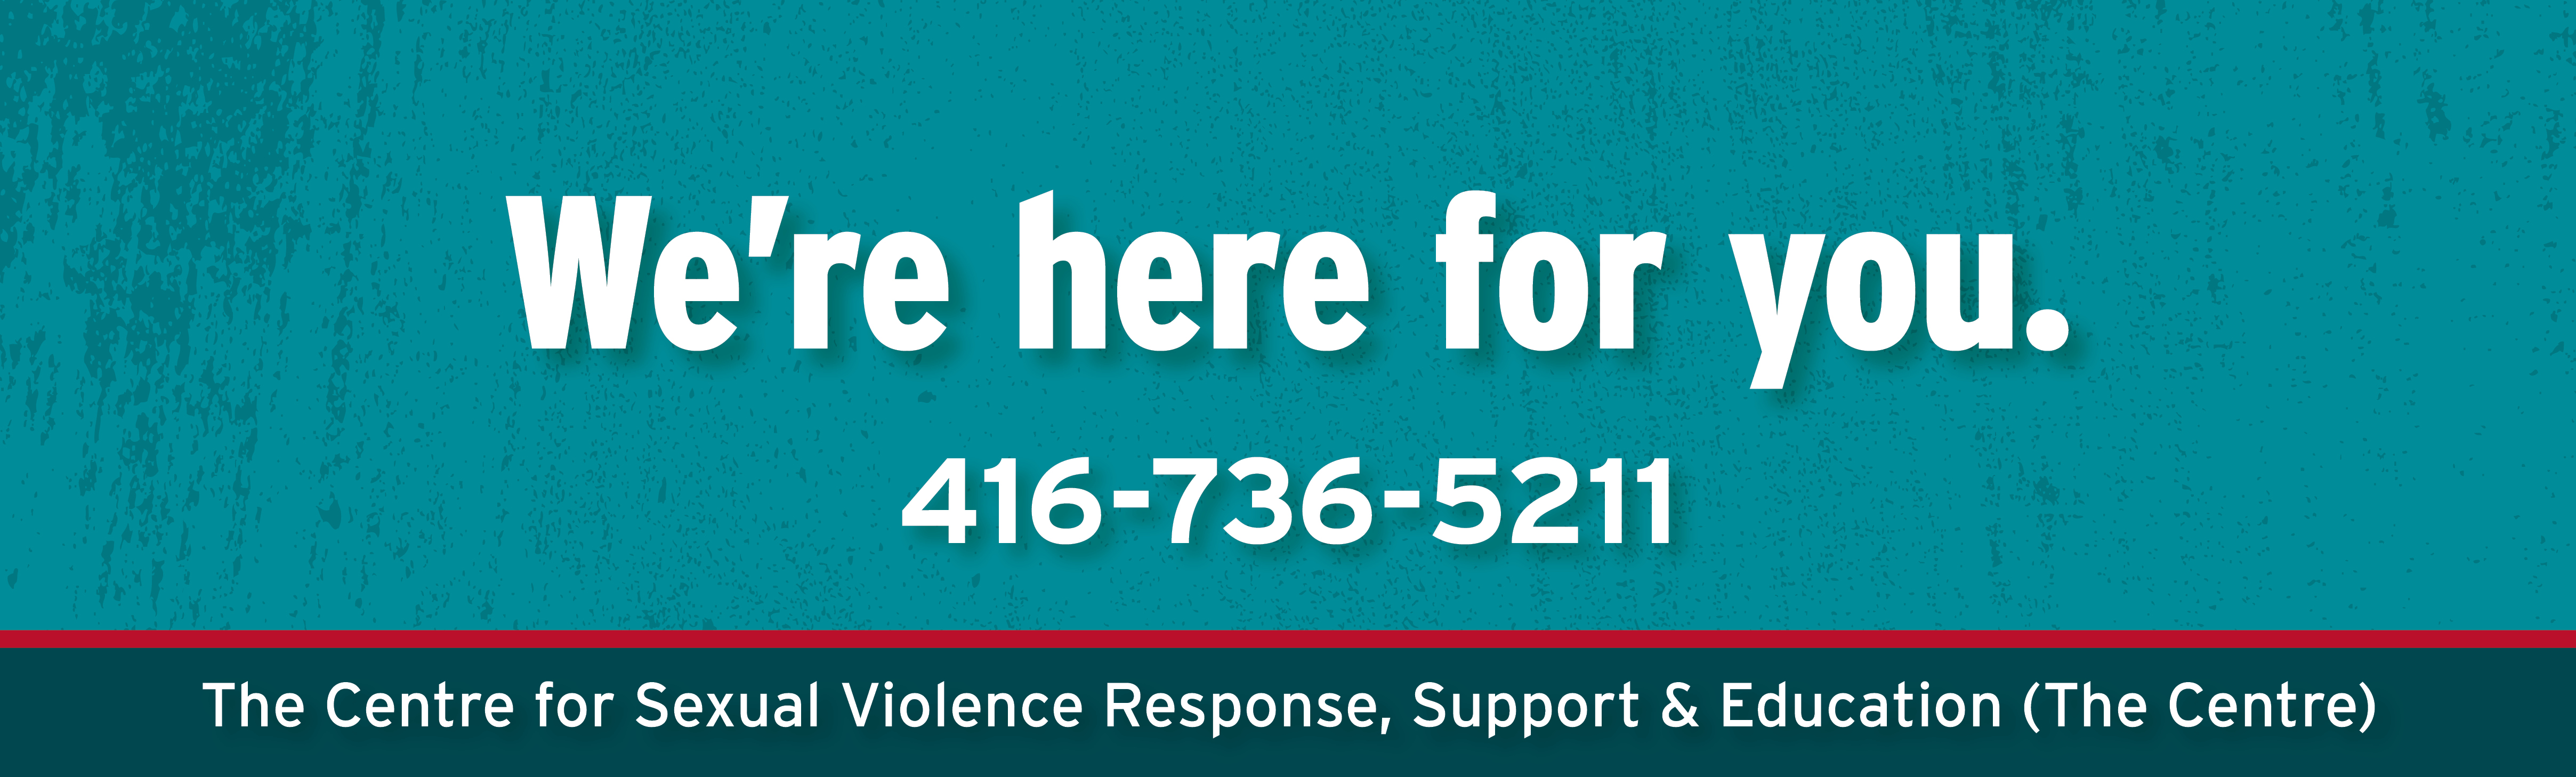 We're here for you.